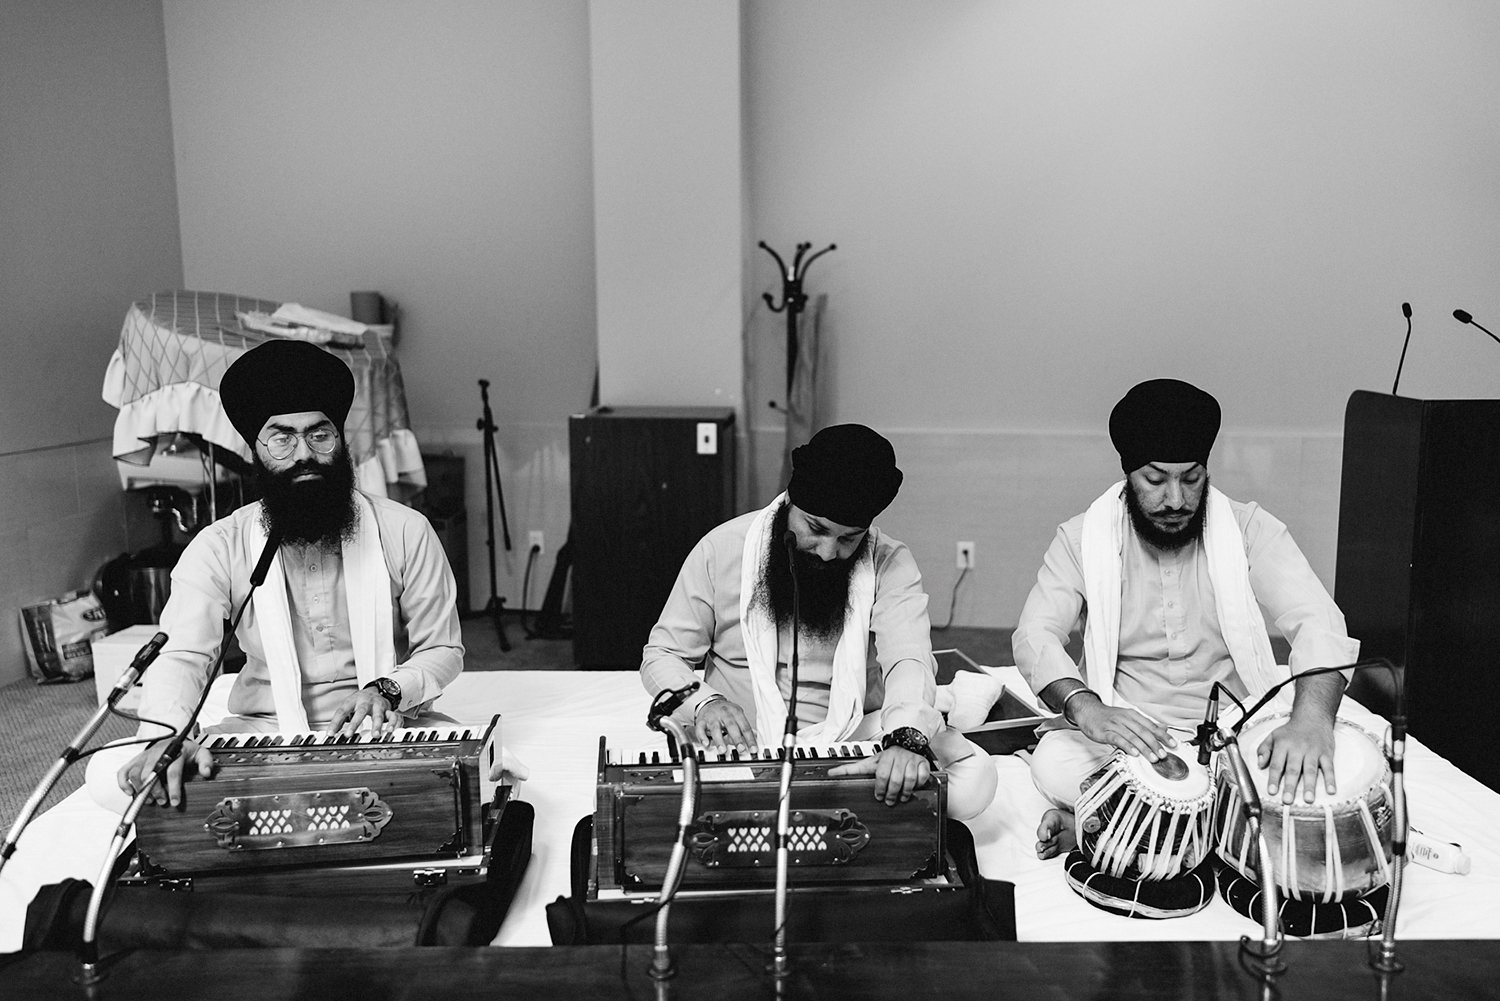 Toronto-Photojournalism-wedding-photographers-3B-Photography-Candid-Documentary-Film-Photography-Analog-Ontario-Hamilton-Port-Perry-Venue-temple-ceremony-sikh-mucisians-playing.jpg